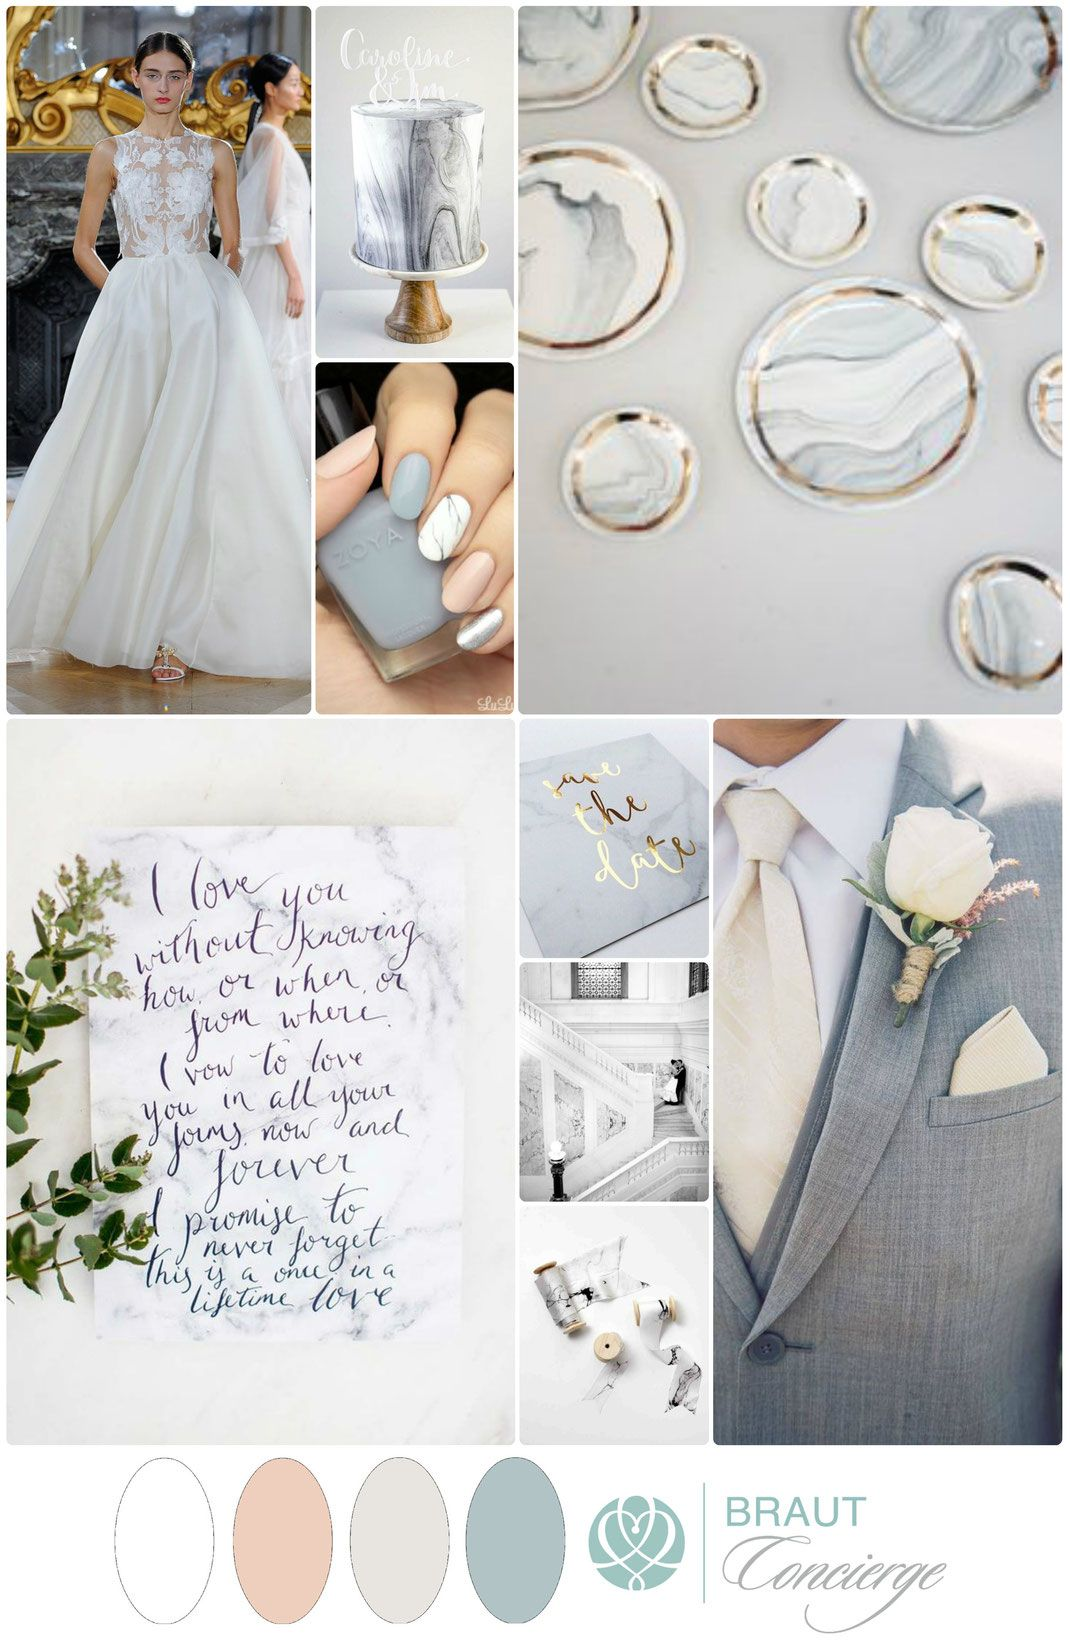 Marble wedding mood board i braut concierge veranstaltungsmanufaktur